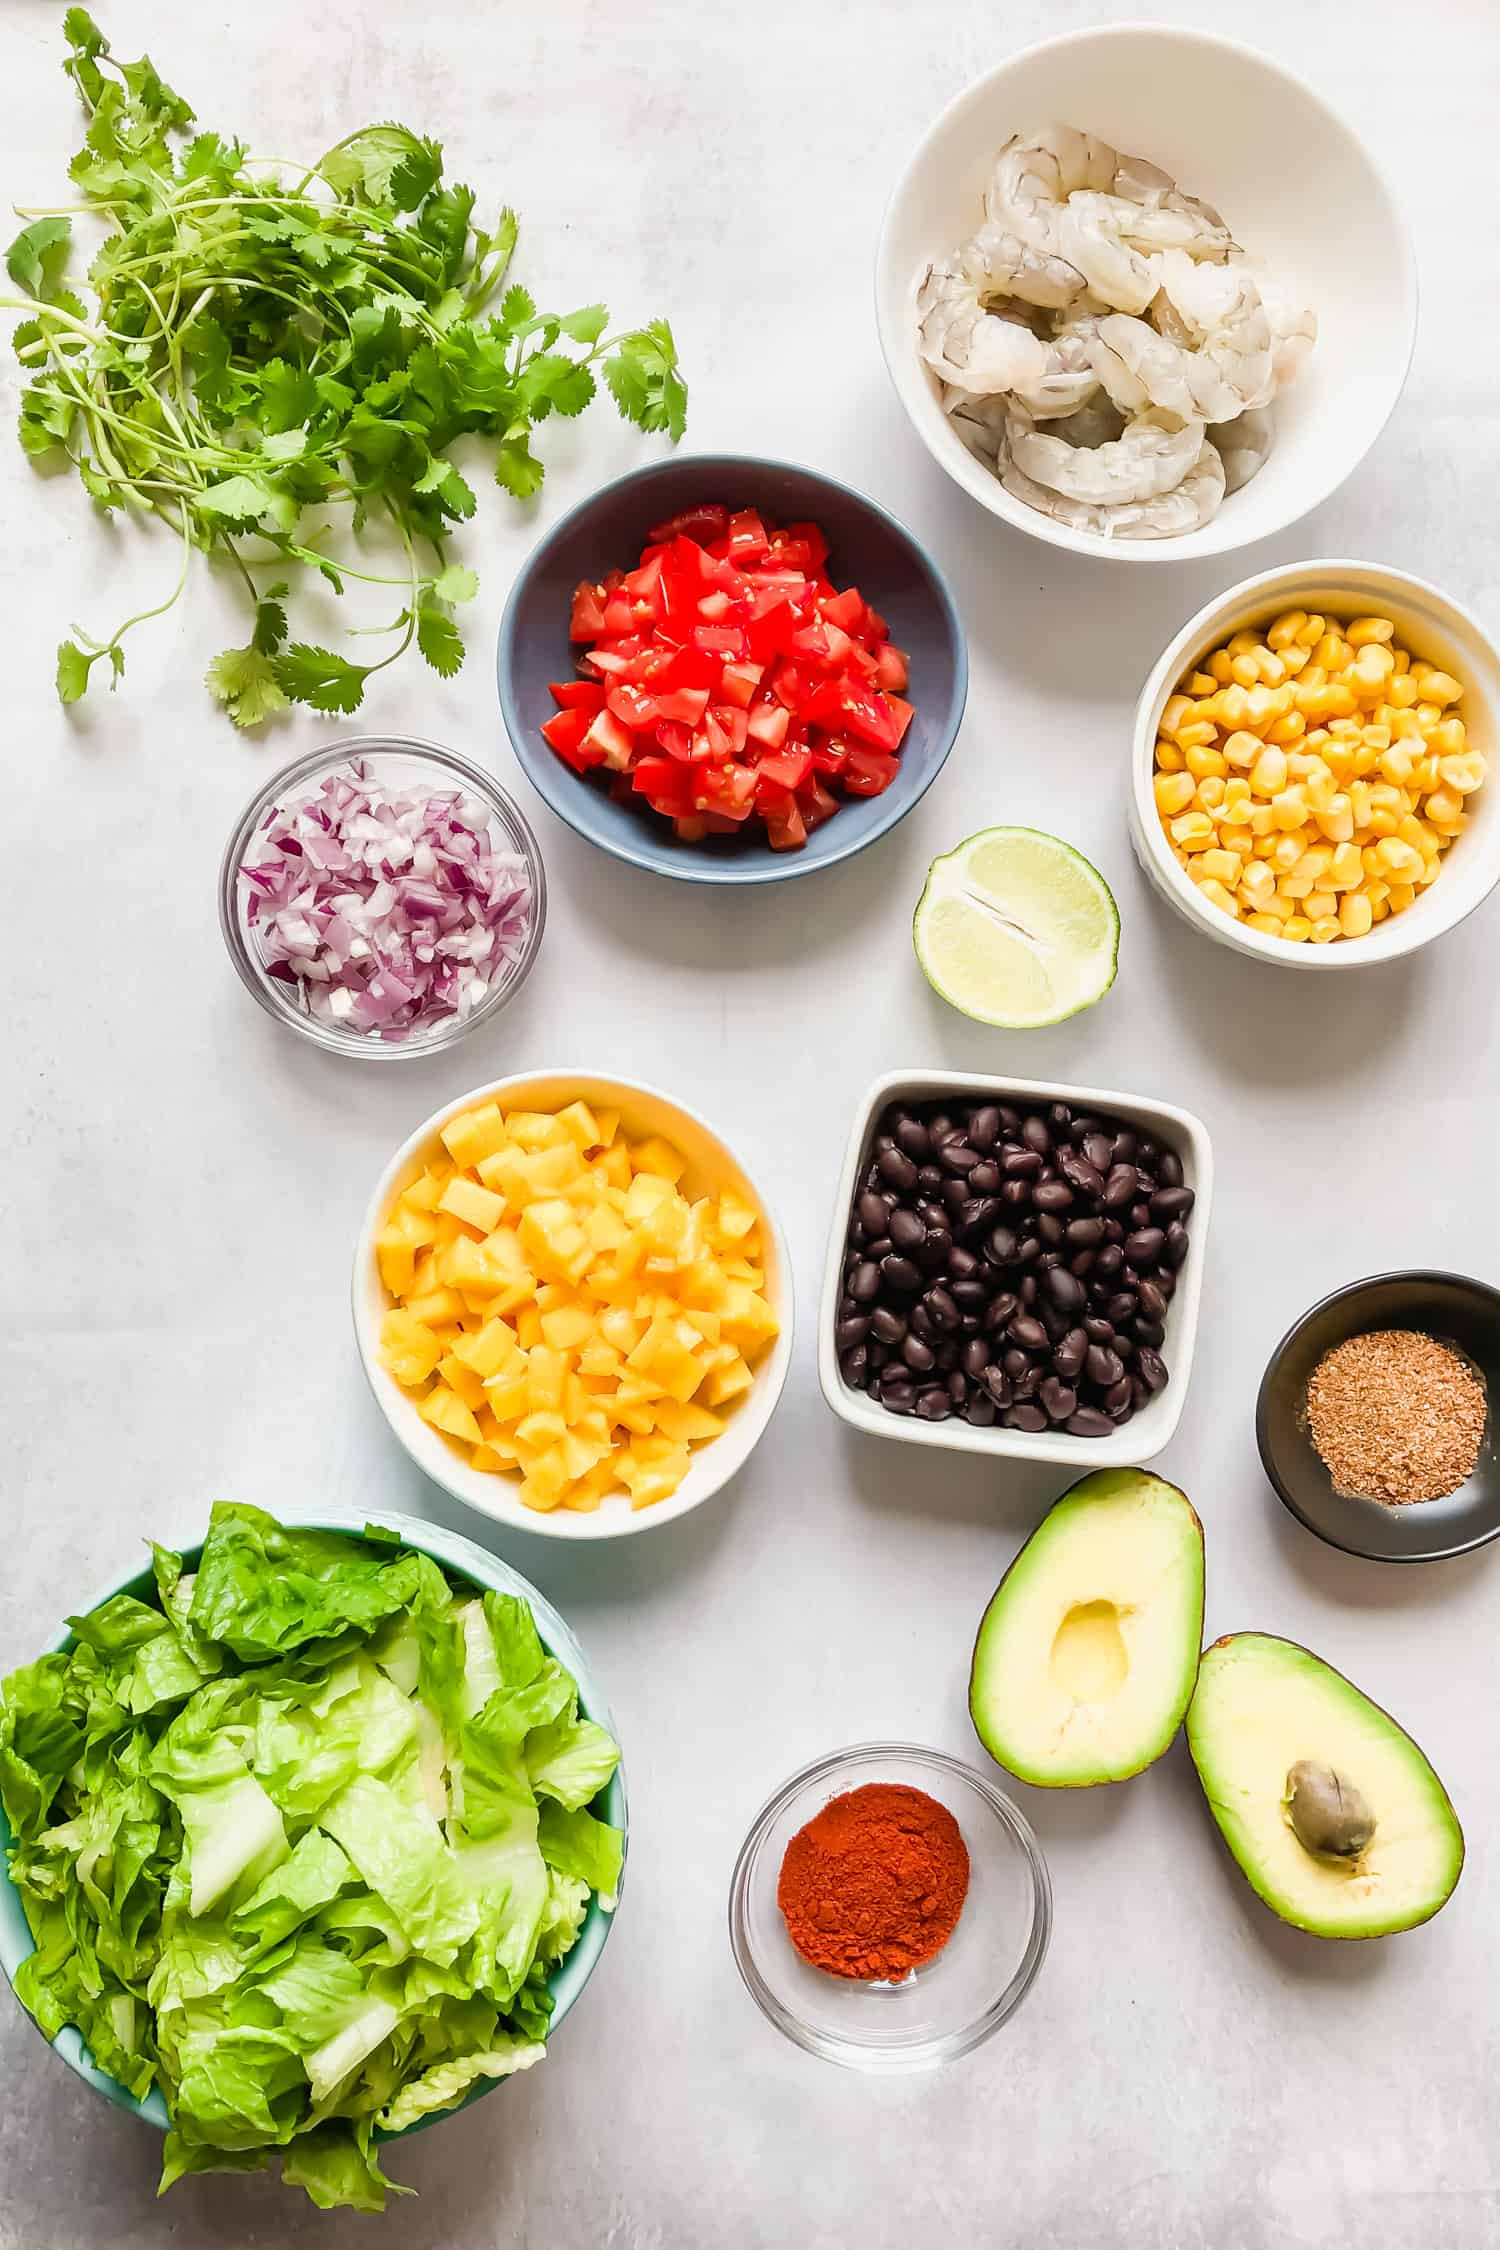 ingredients in bowls: lettuce, corn, beans, tomatoes, mango, shrimp, onion, lime, avocado, cilantro